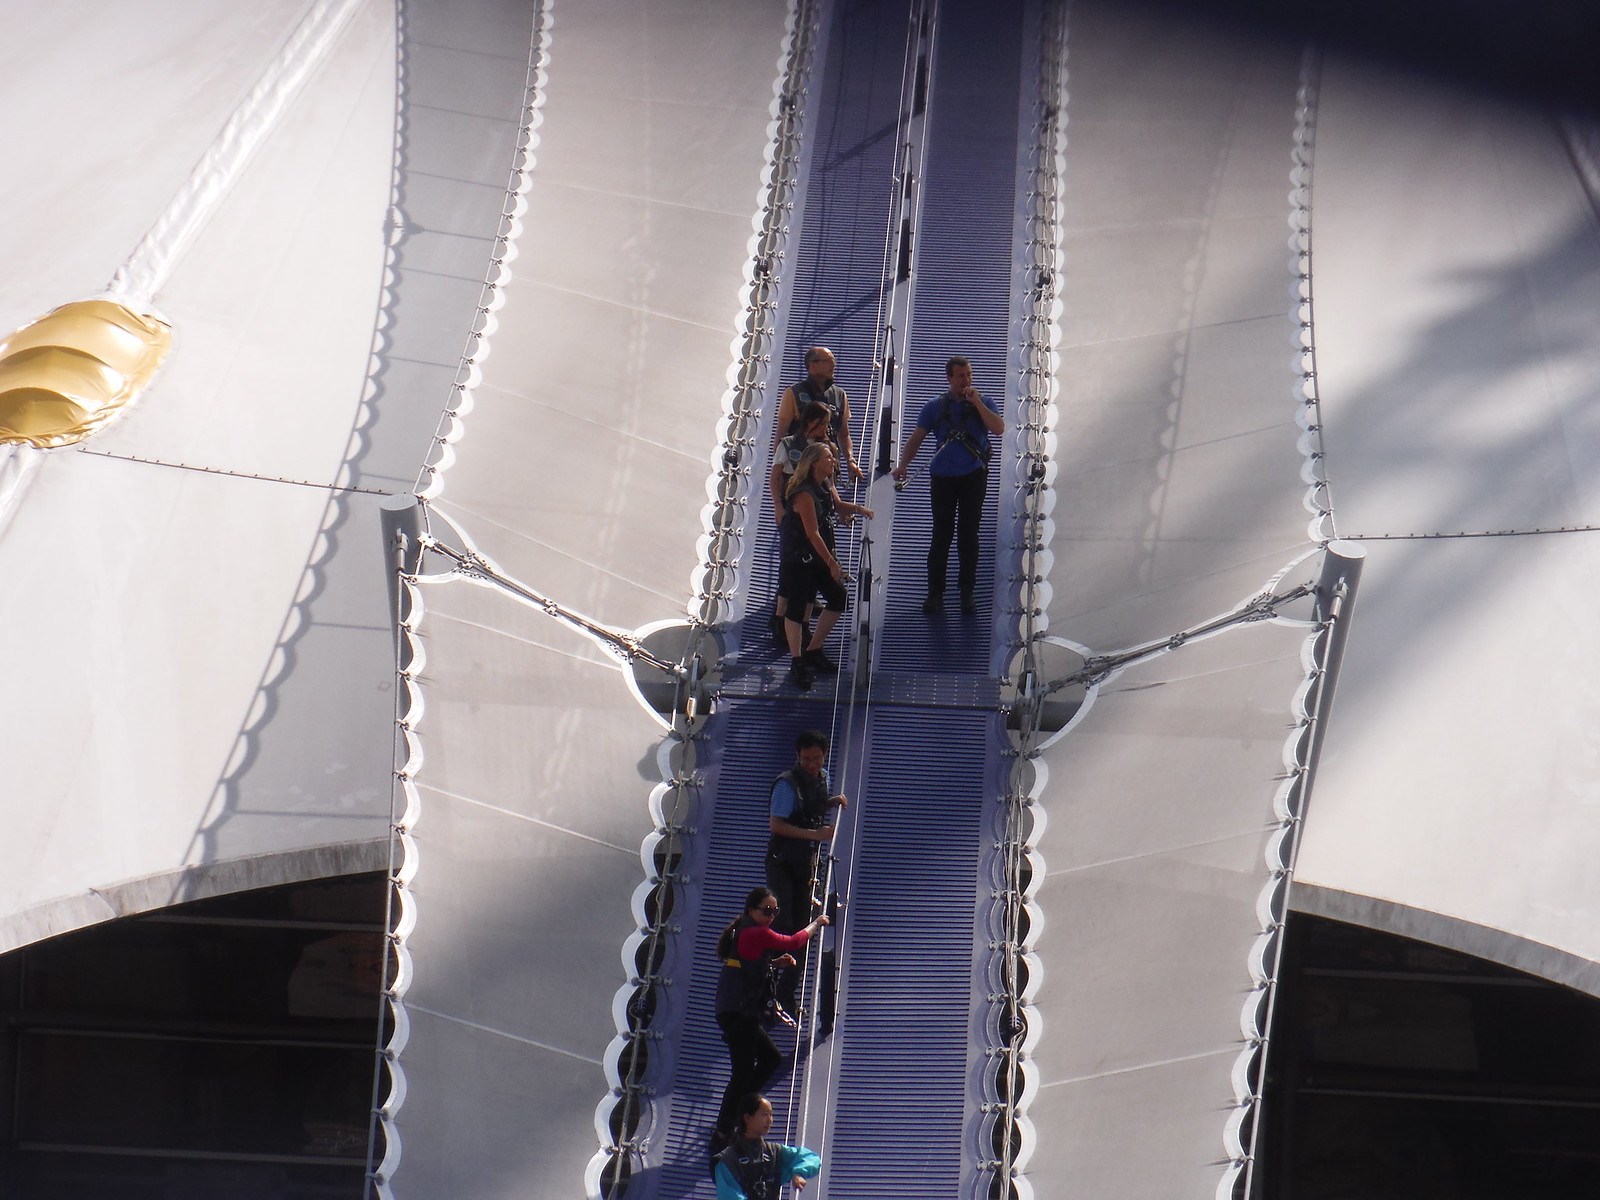 In Full Harness on the roof of the O2-Dome SWC Short Walk 21 - The Line Modern Art Walk (Stratford to North Greenwich)